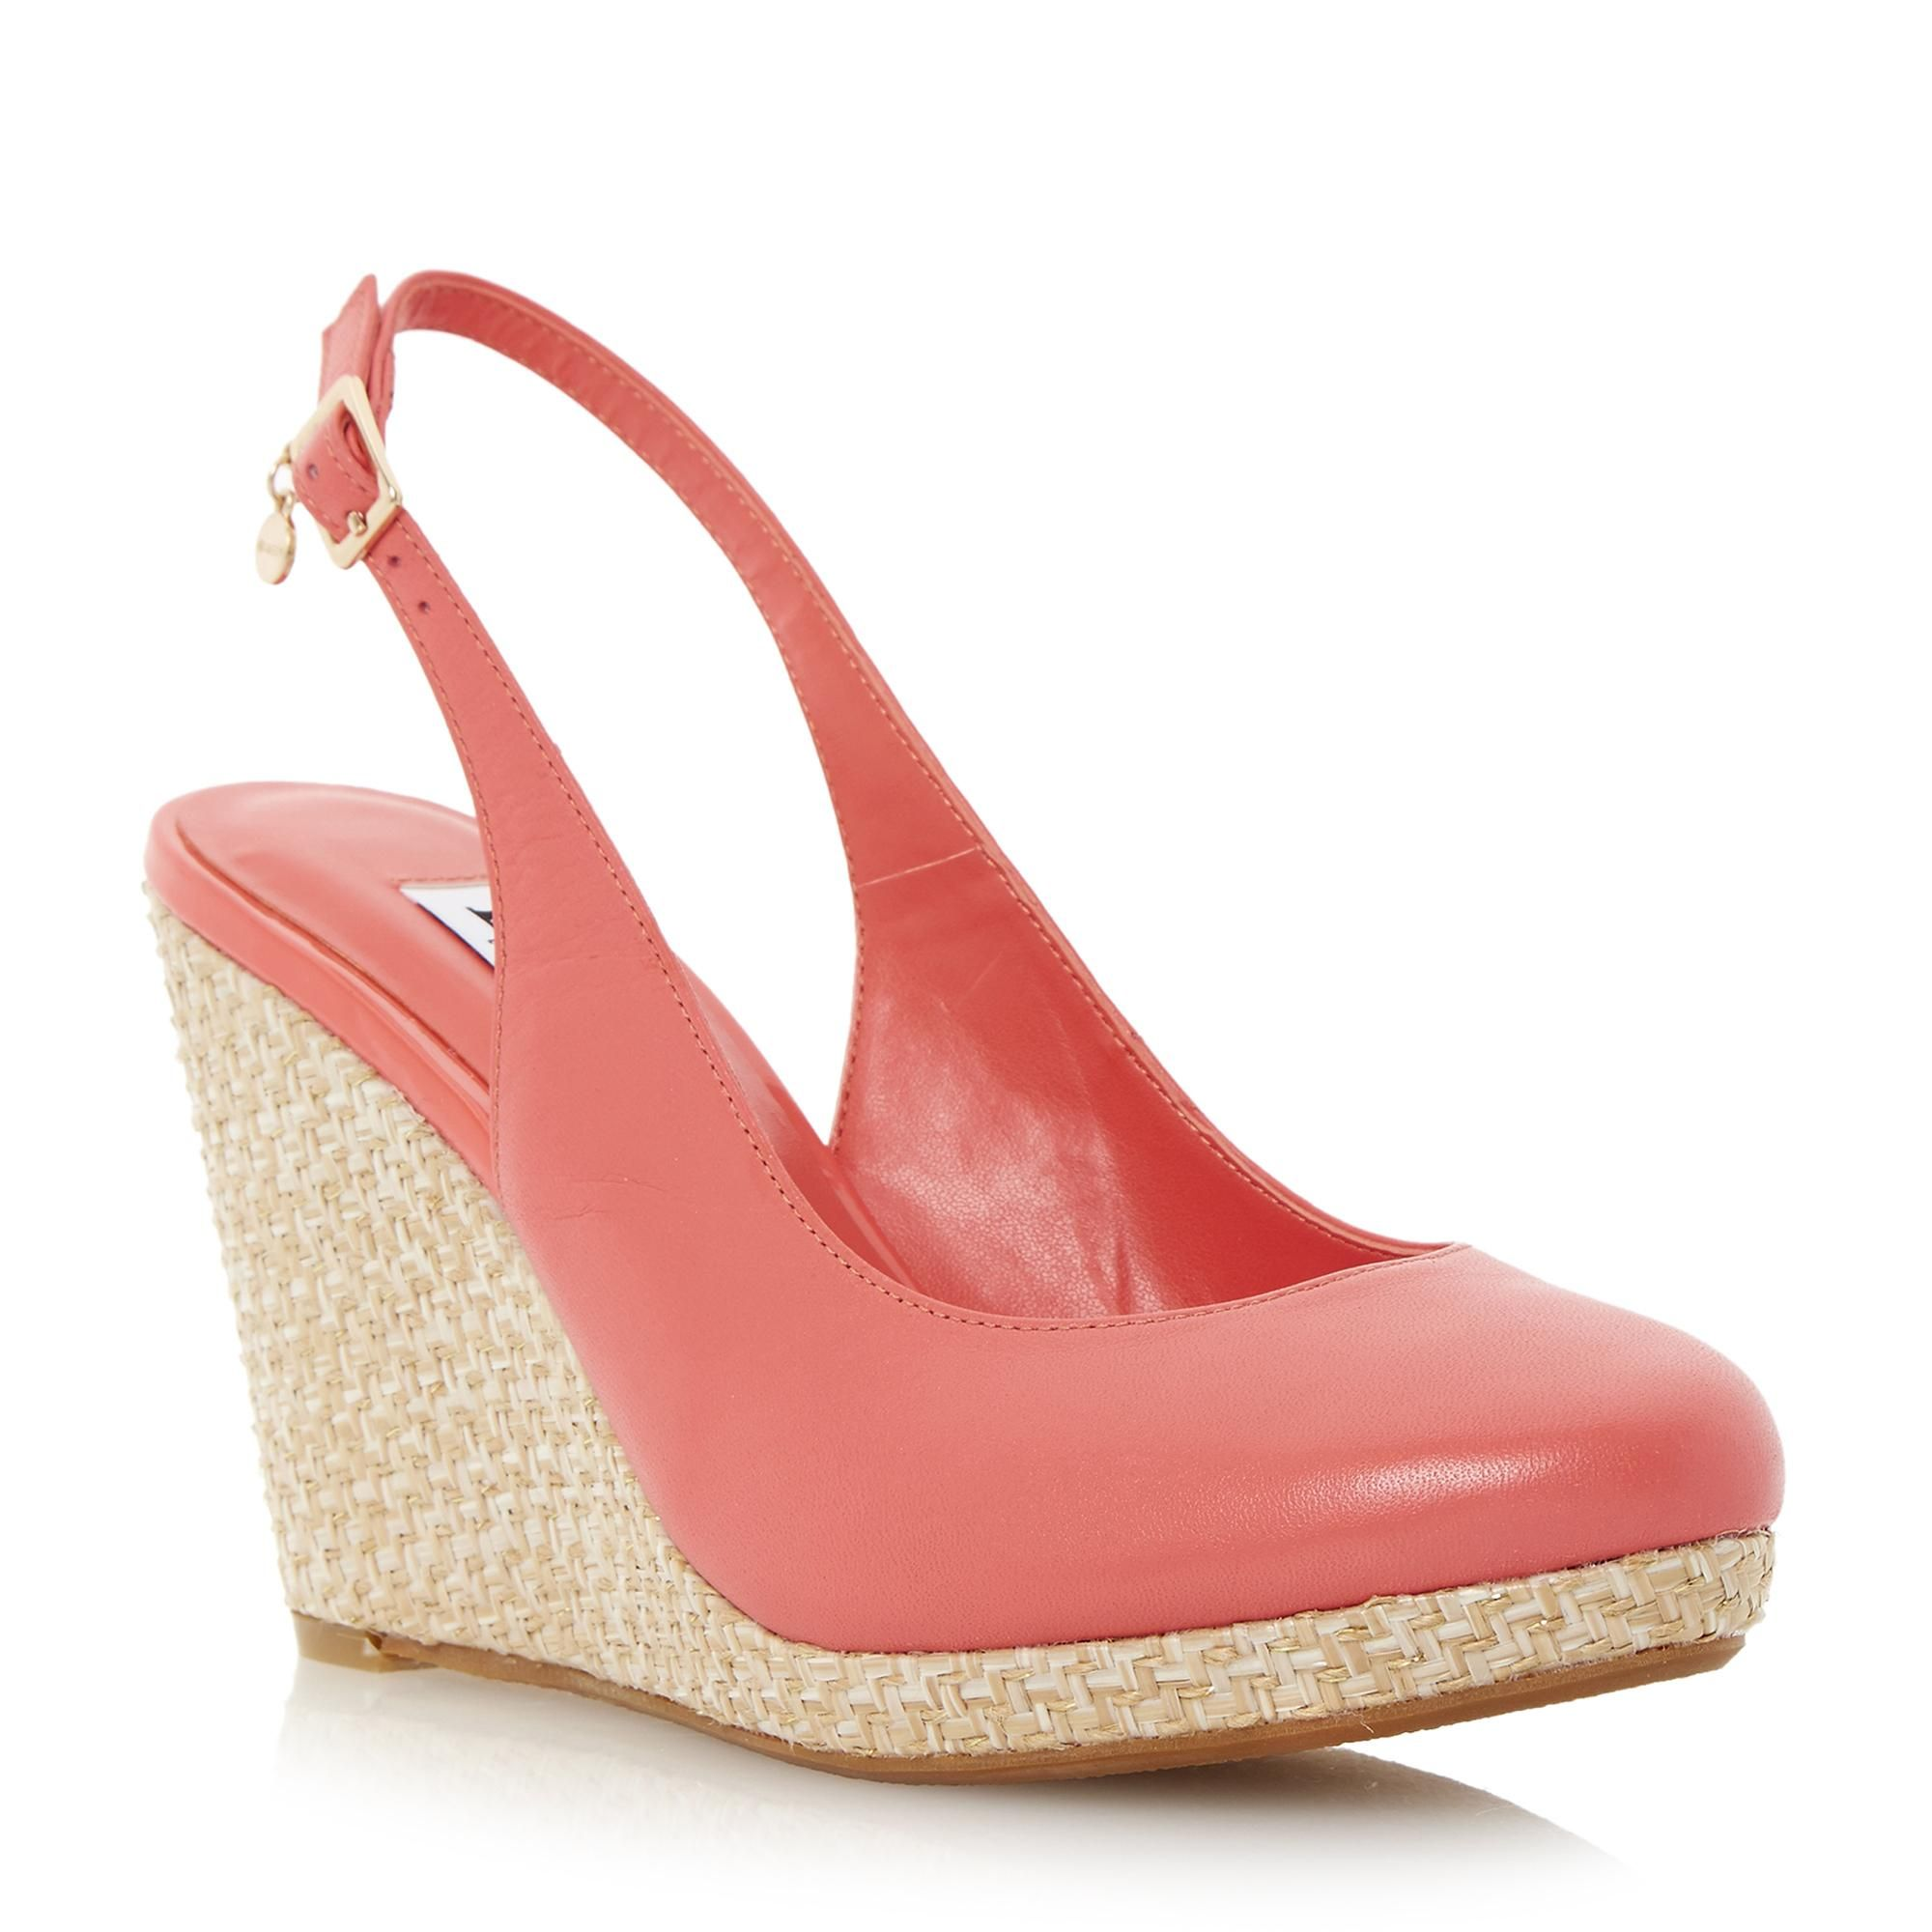 DUNE LADIES CECILLE - Espadrille Slingback Wedge Sandal - coral | Dune Shoes Online